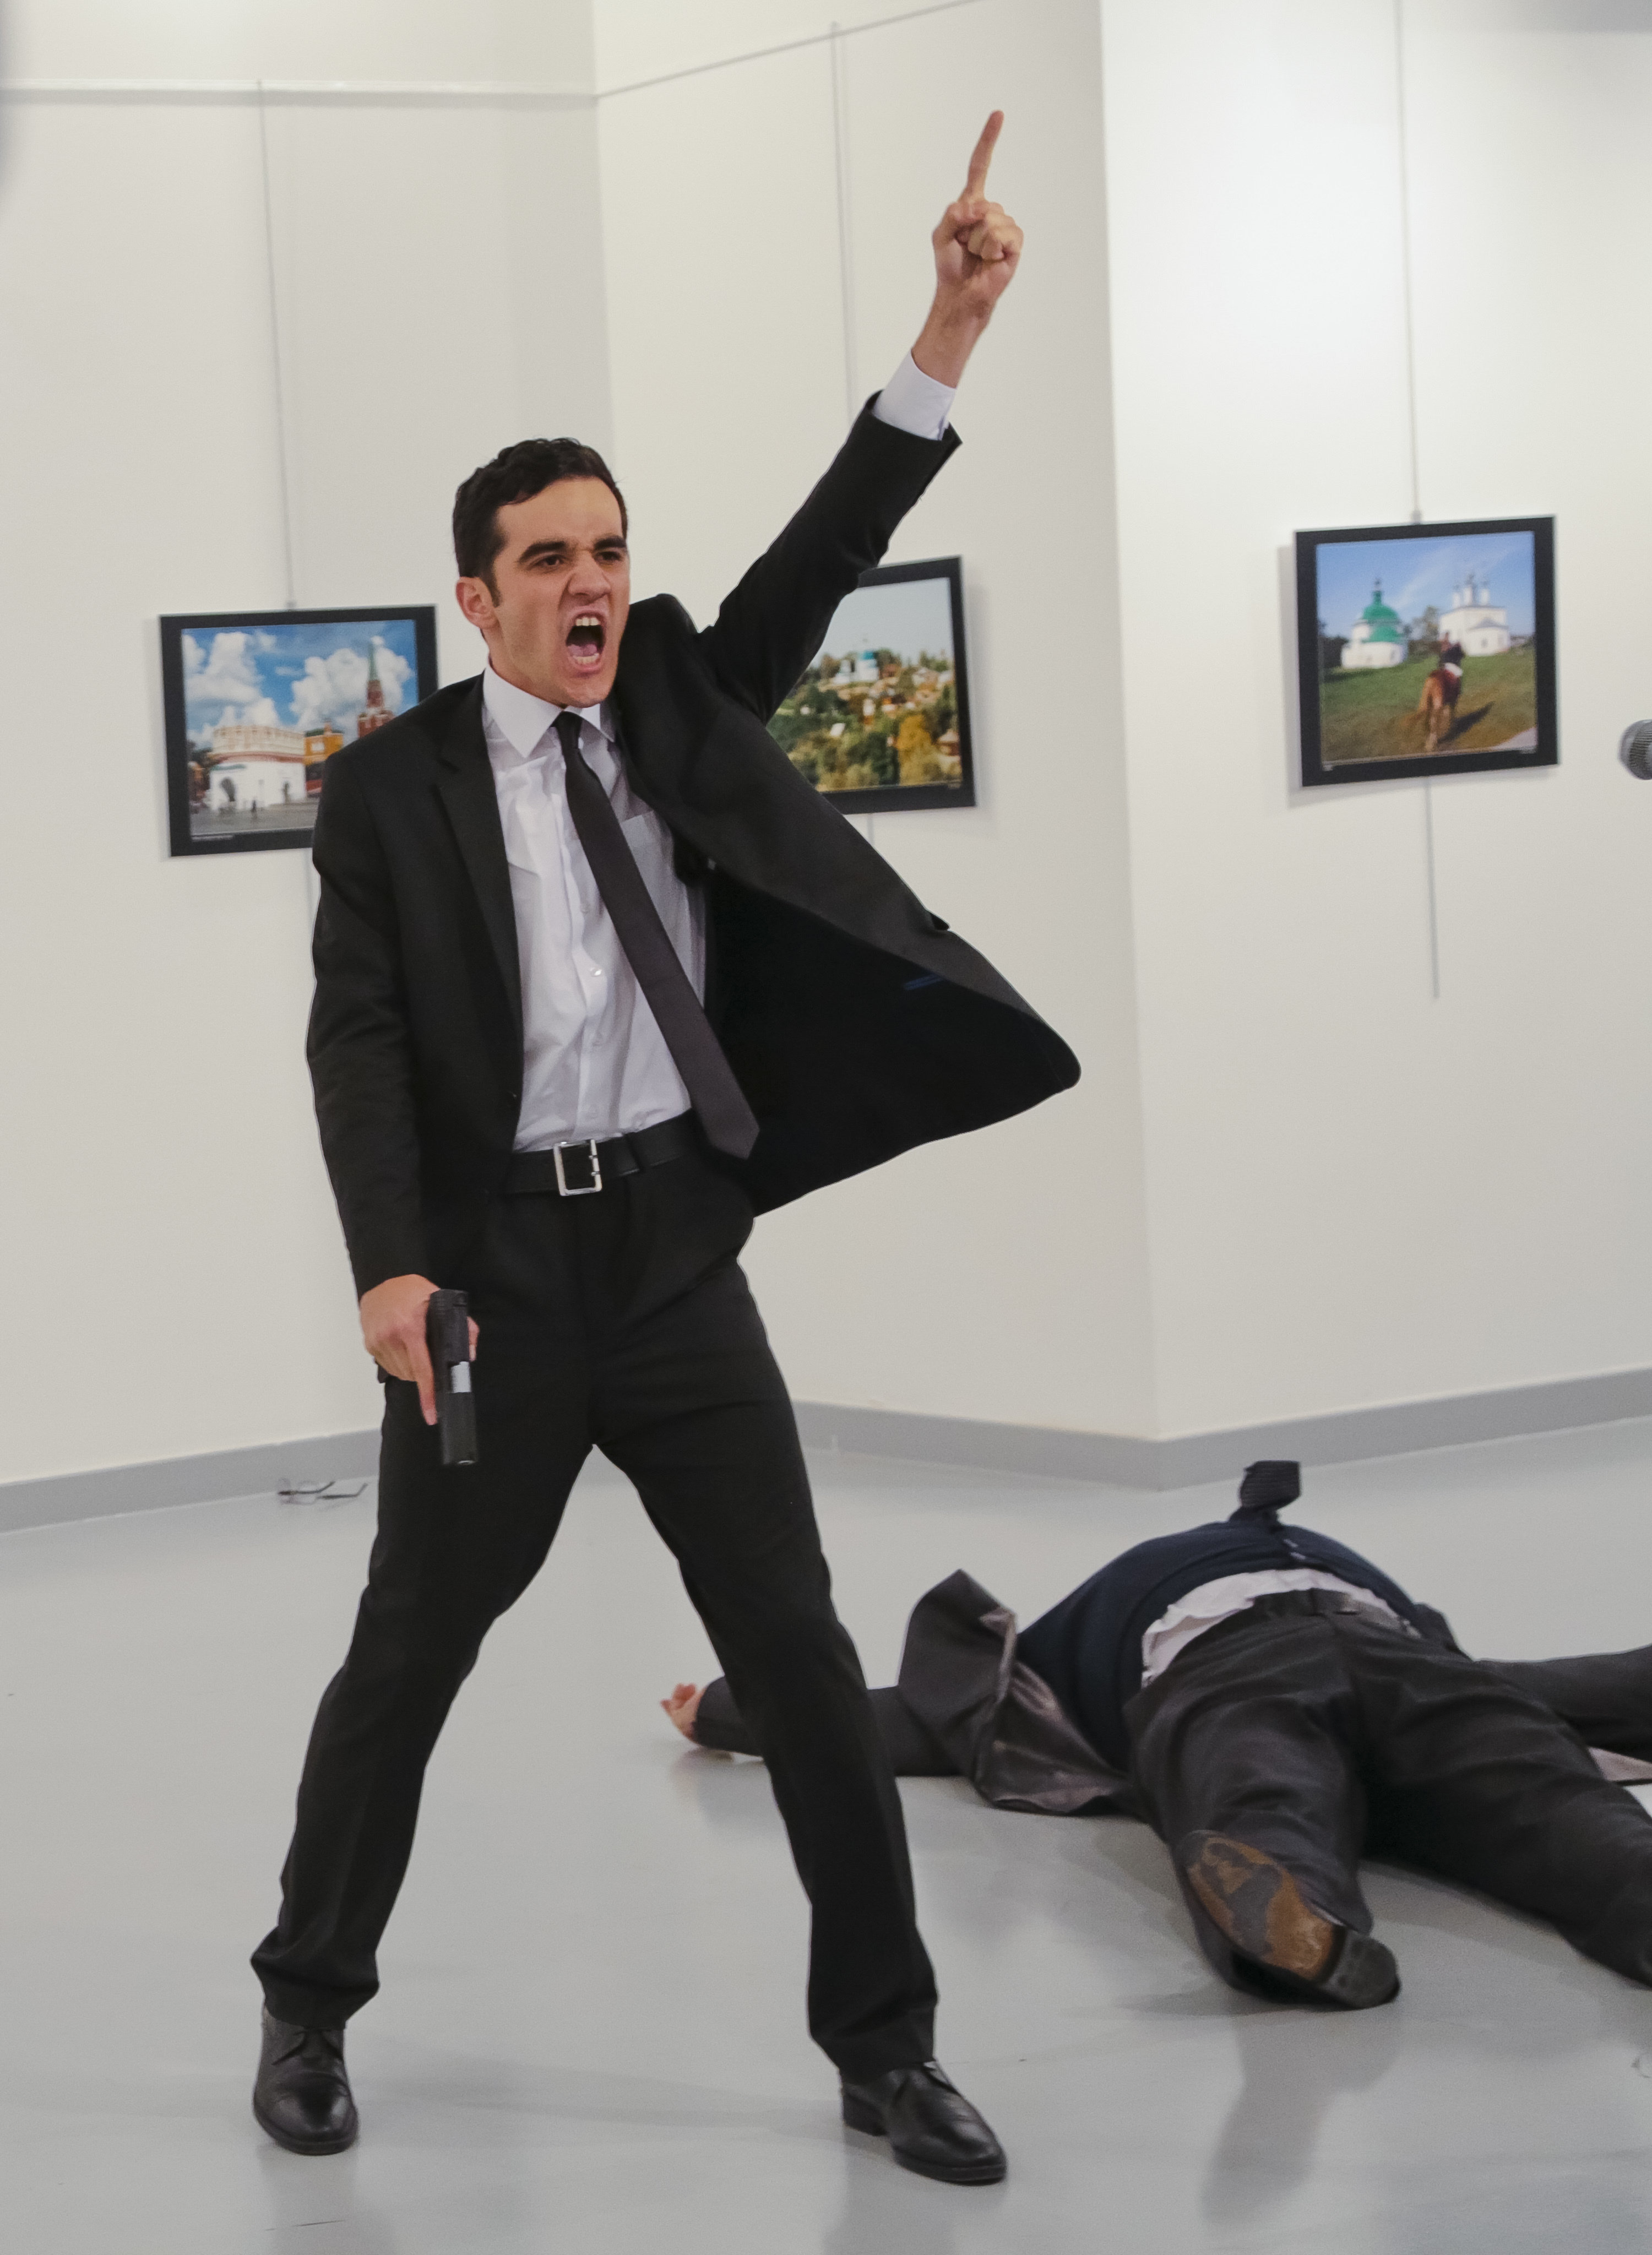 In this Monday, Dec. 19, 2016 file photo, Mevlut Mert Altintas shouts after shooting Andrei Karlov, right, the Russian ambassador to Turkey, at an art gallery in Ankara, Turkey